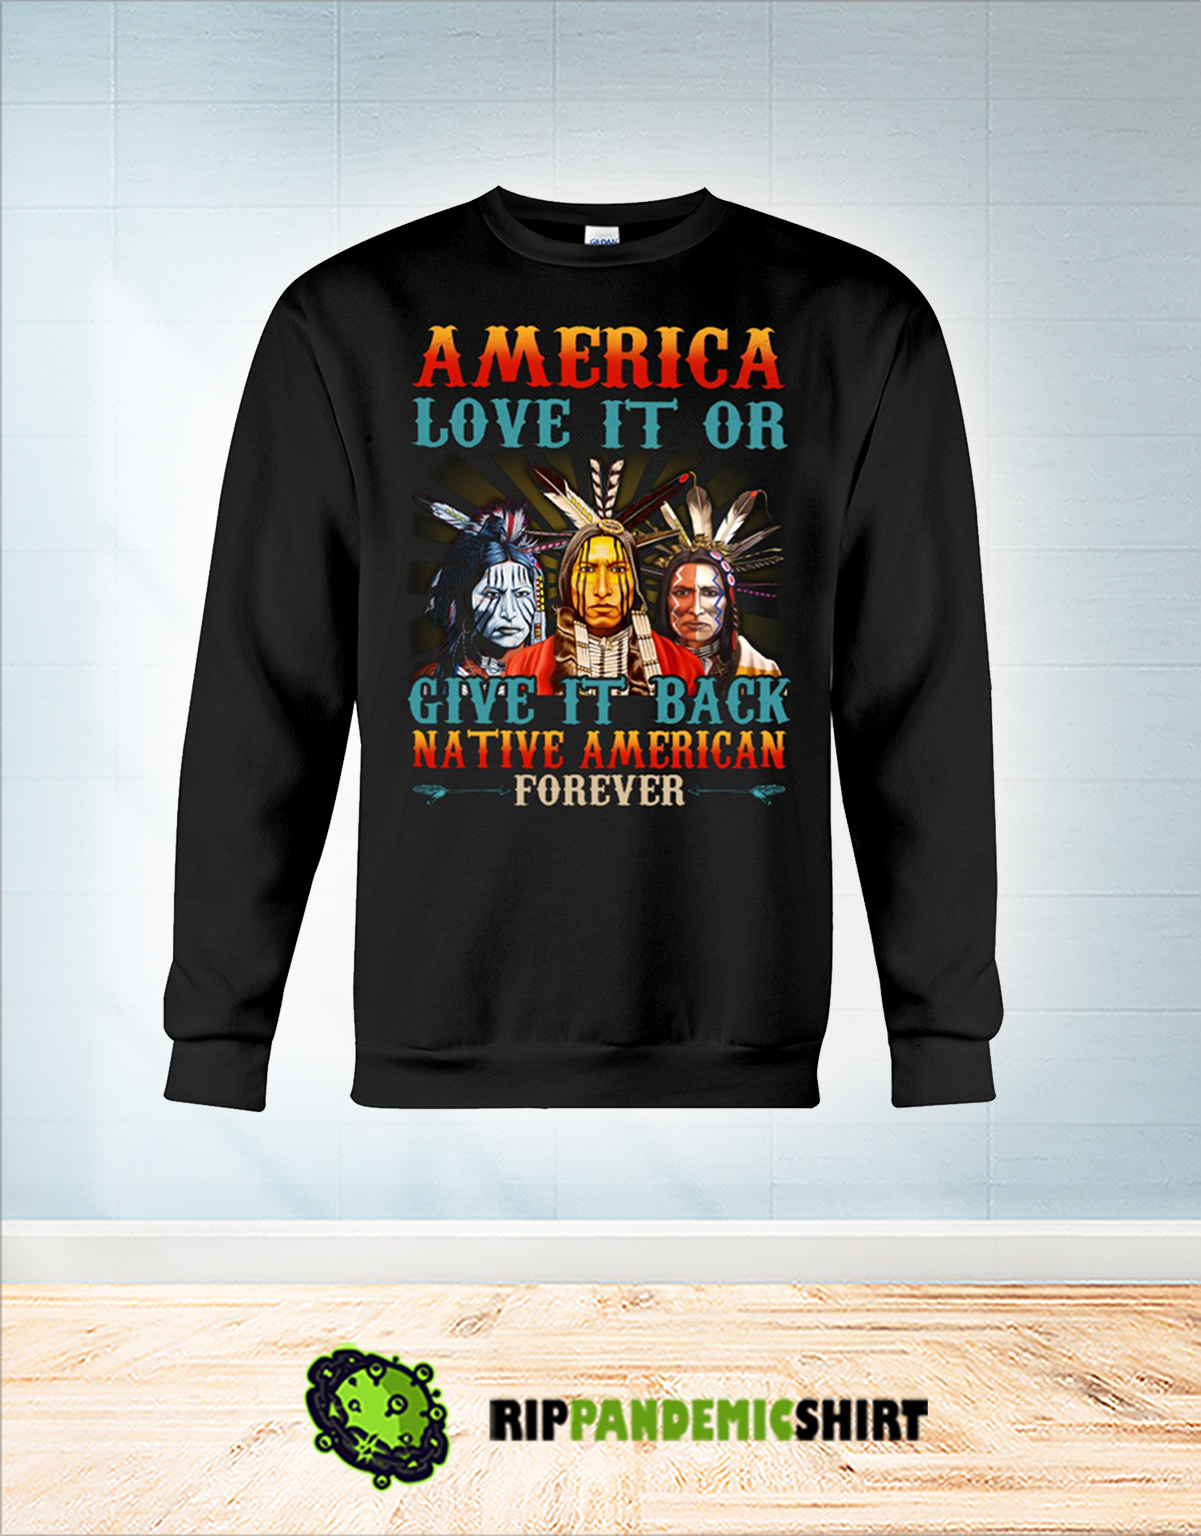 America love it or give it back native american forever sweatshirt